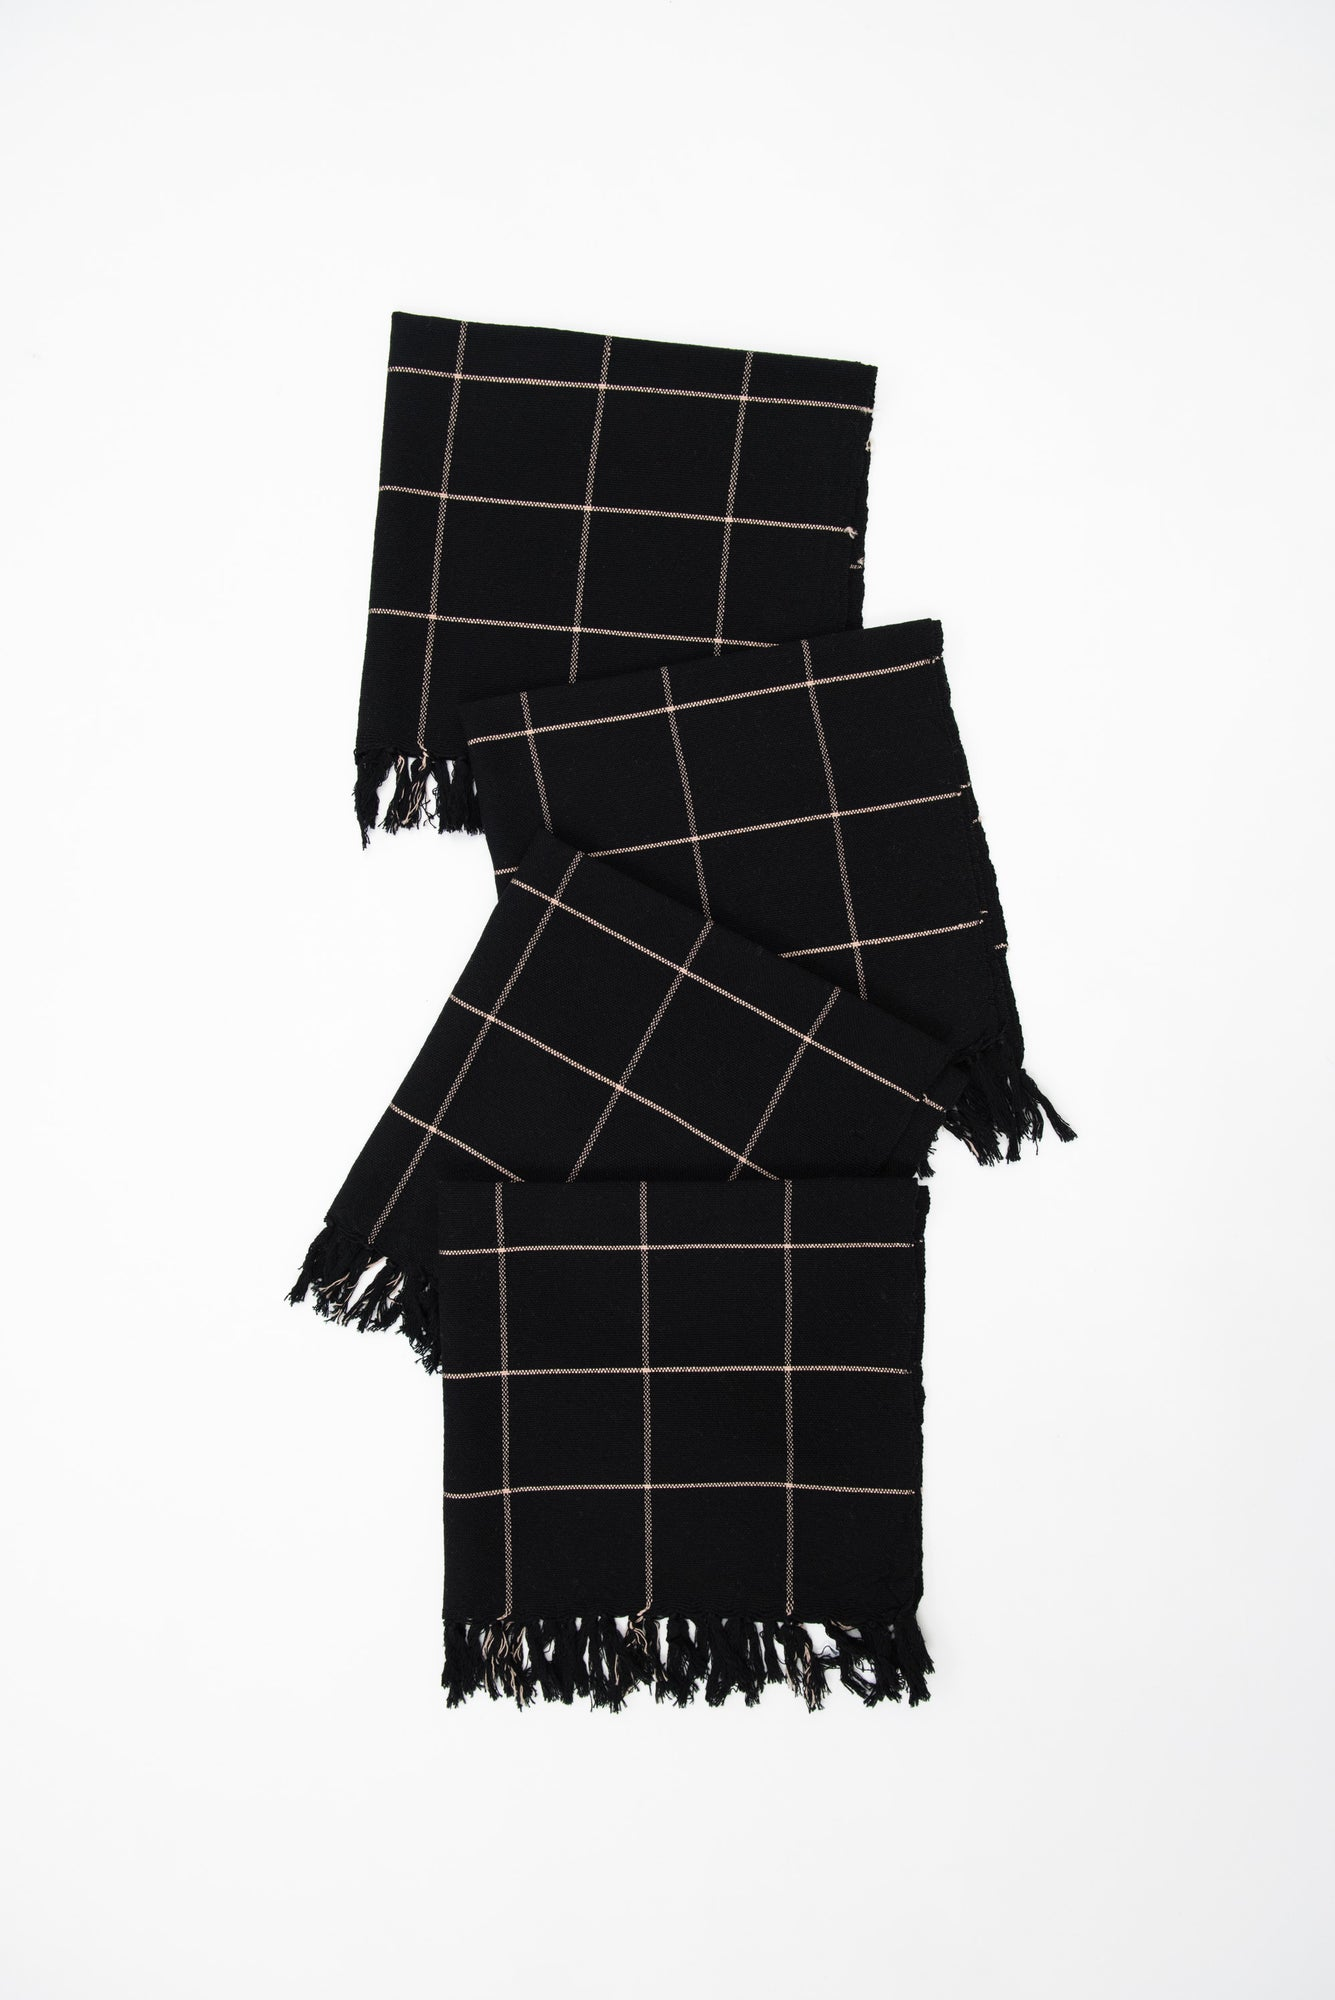 Big Sur Grid Black Napkins